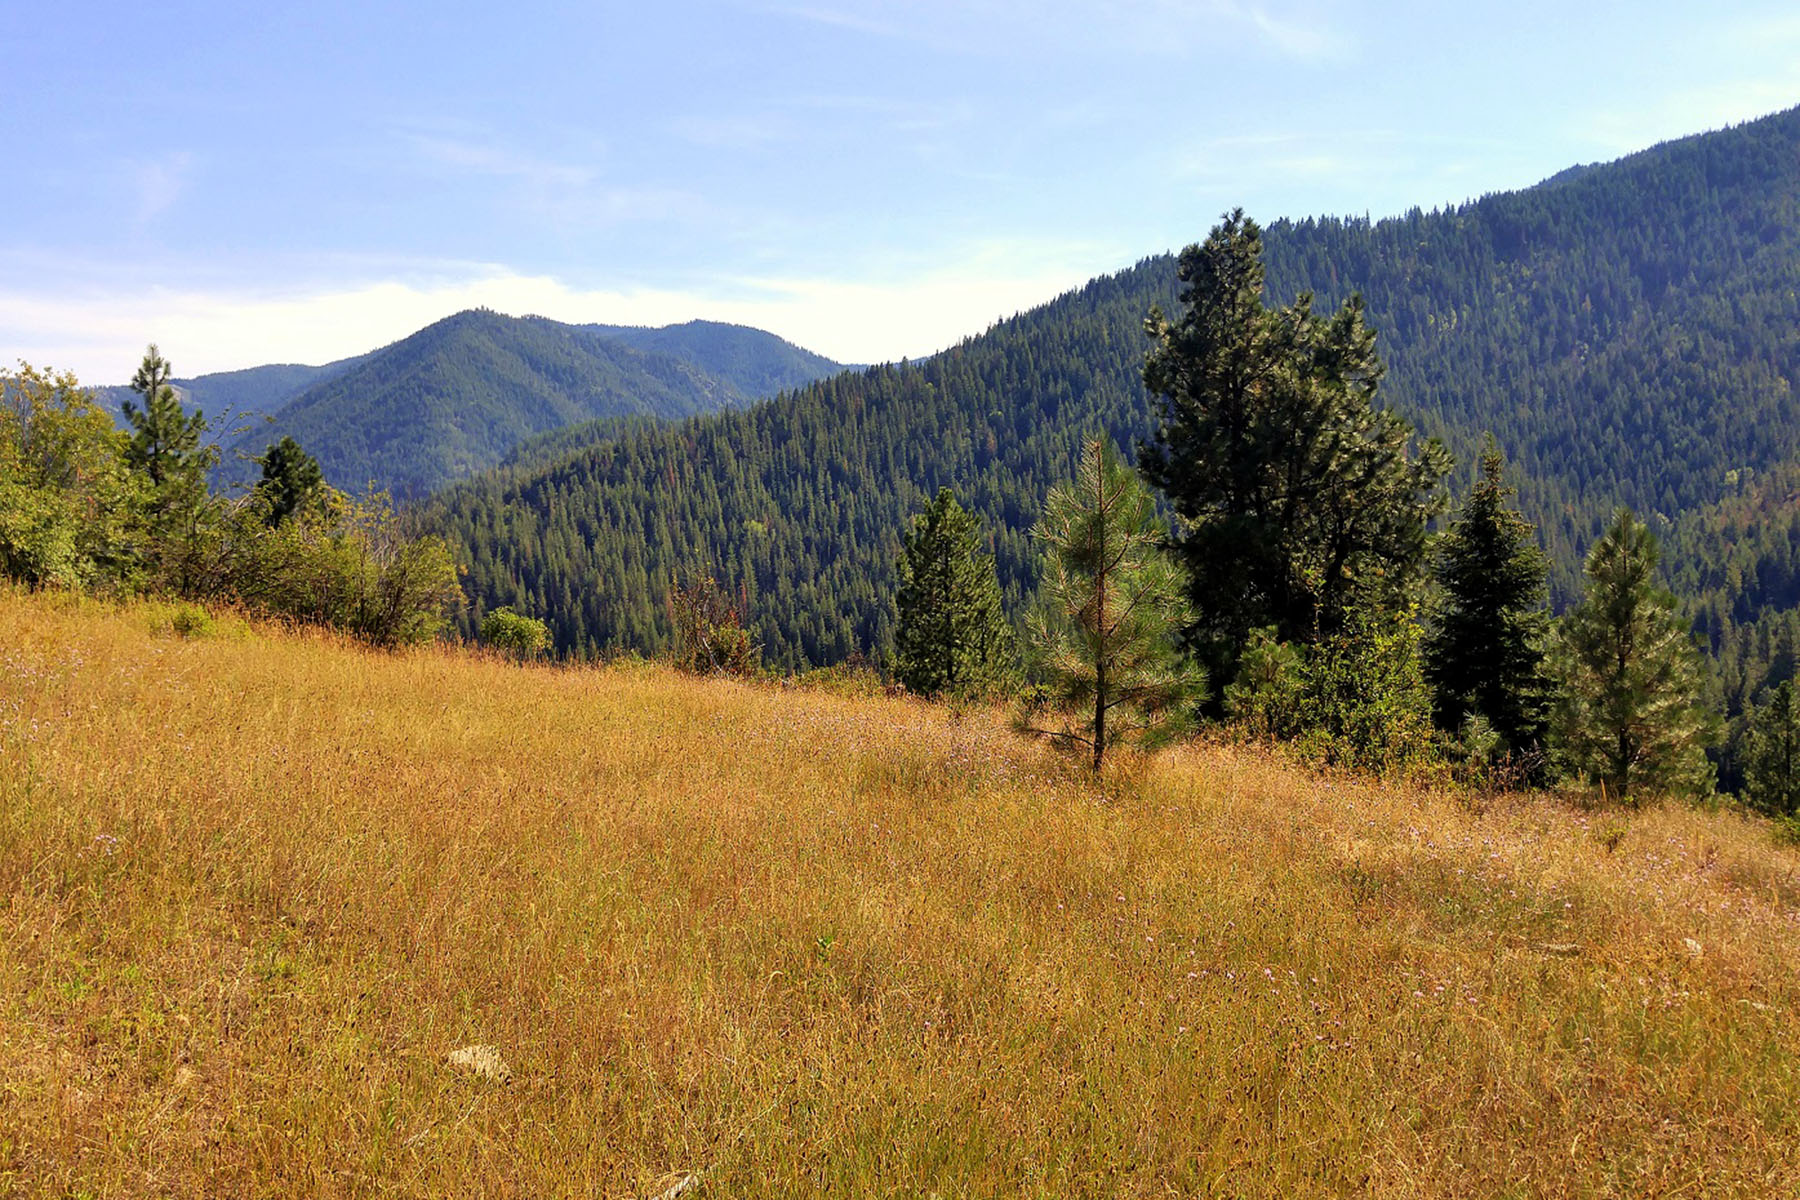 Terreno por un Venta en 36.51 acres overlooking the beautiful Notrh Idaho mountains NNA 5 East Fork Pine Creek Rd Pinehurst, Idaho, 83850 Estados Unidos